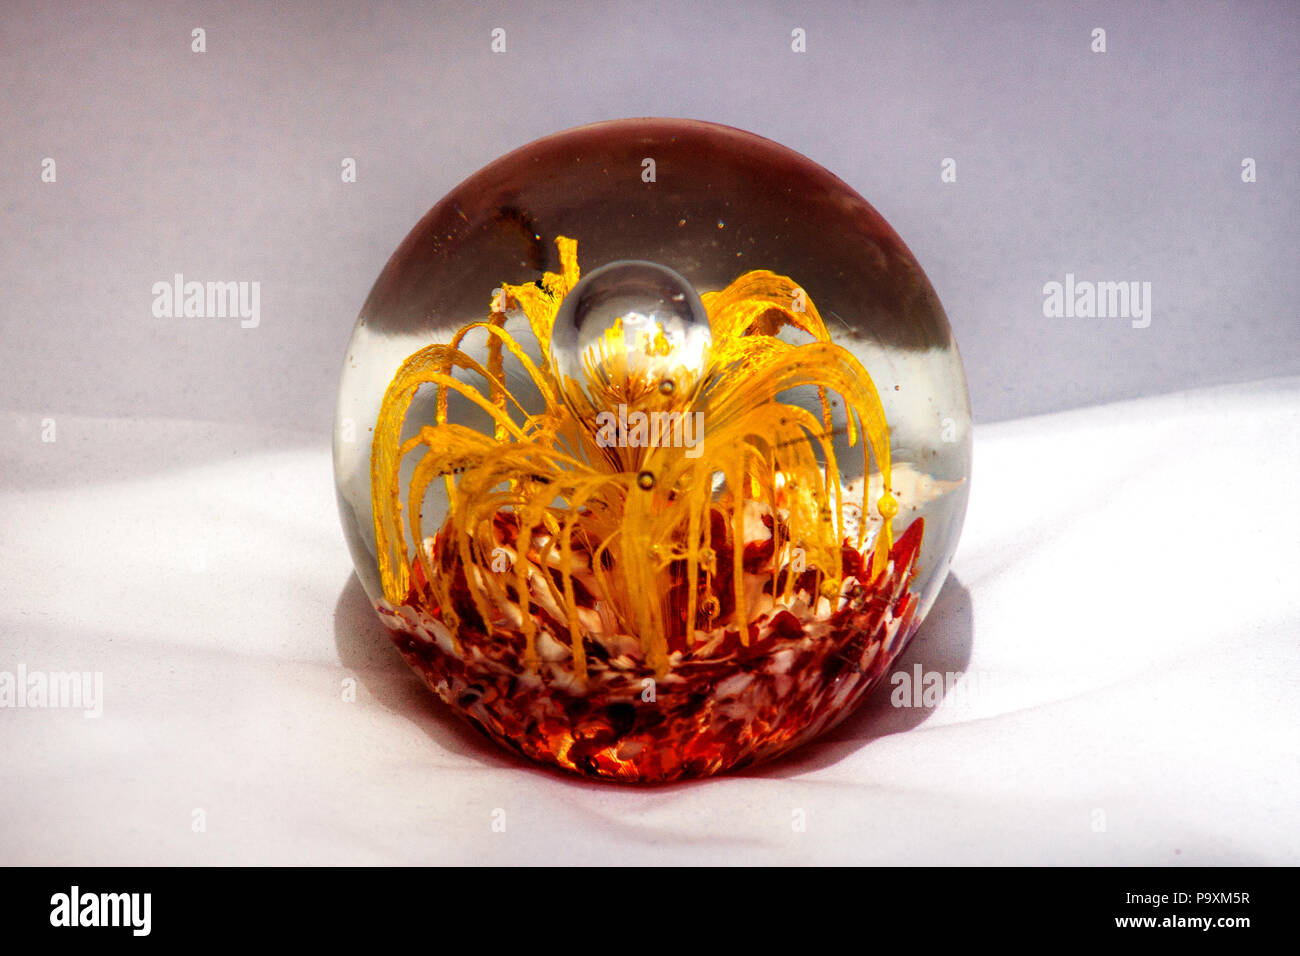 Glass Ball With Yellow And Red Decorative Elements In It Stock